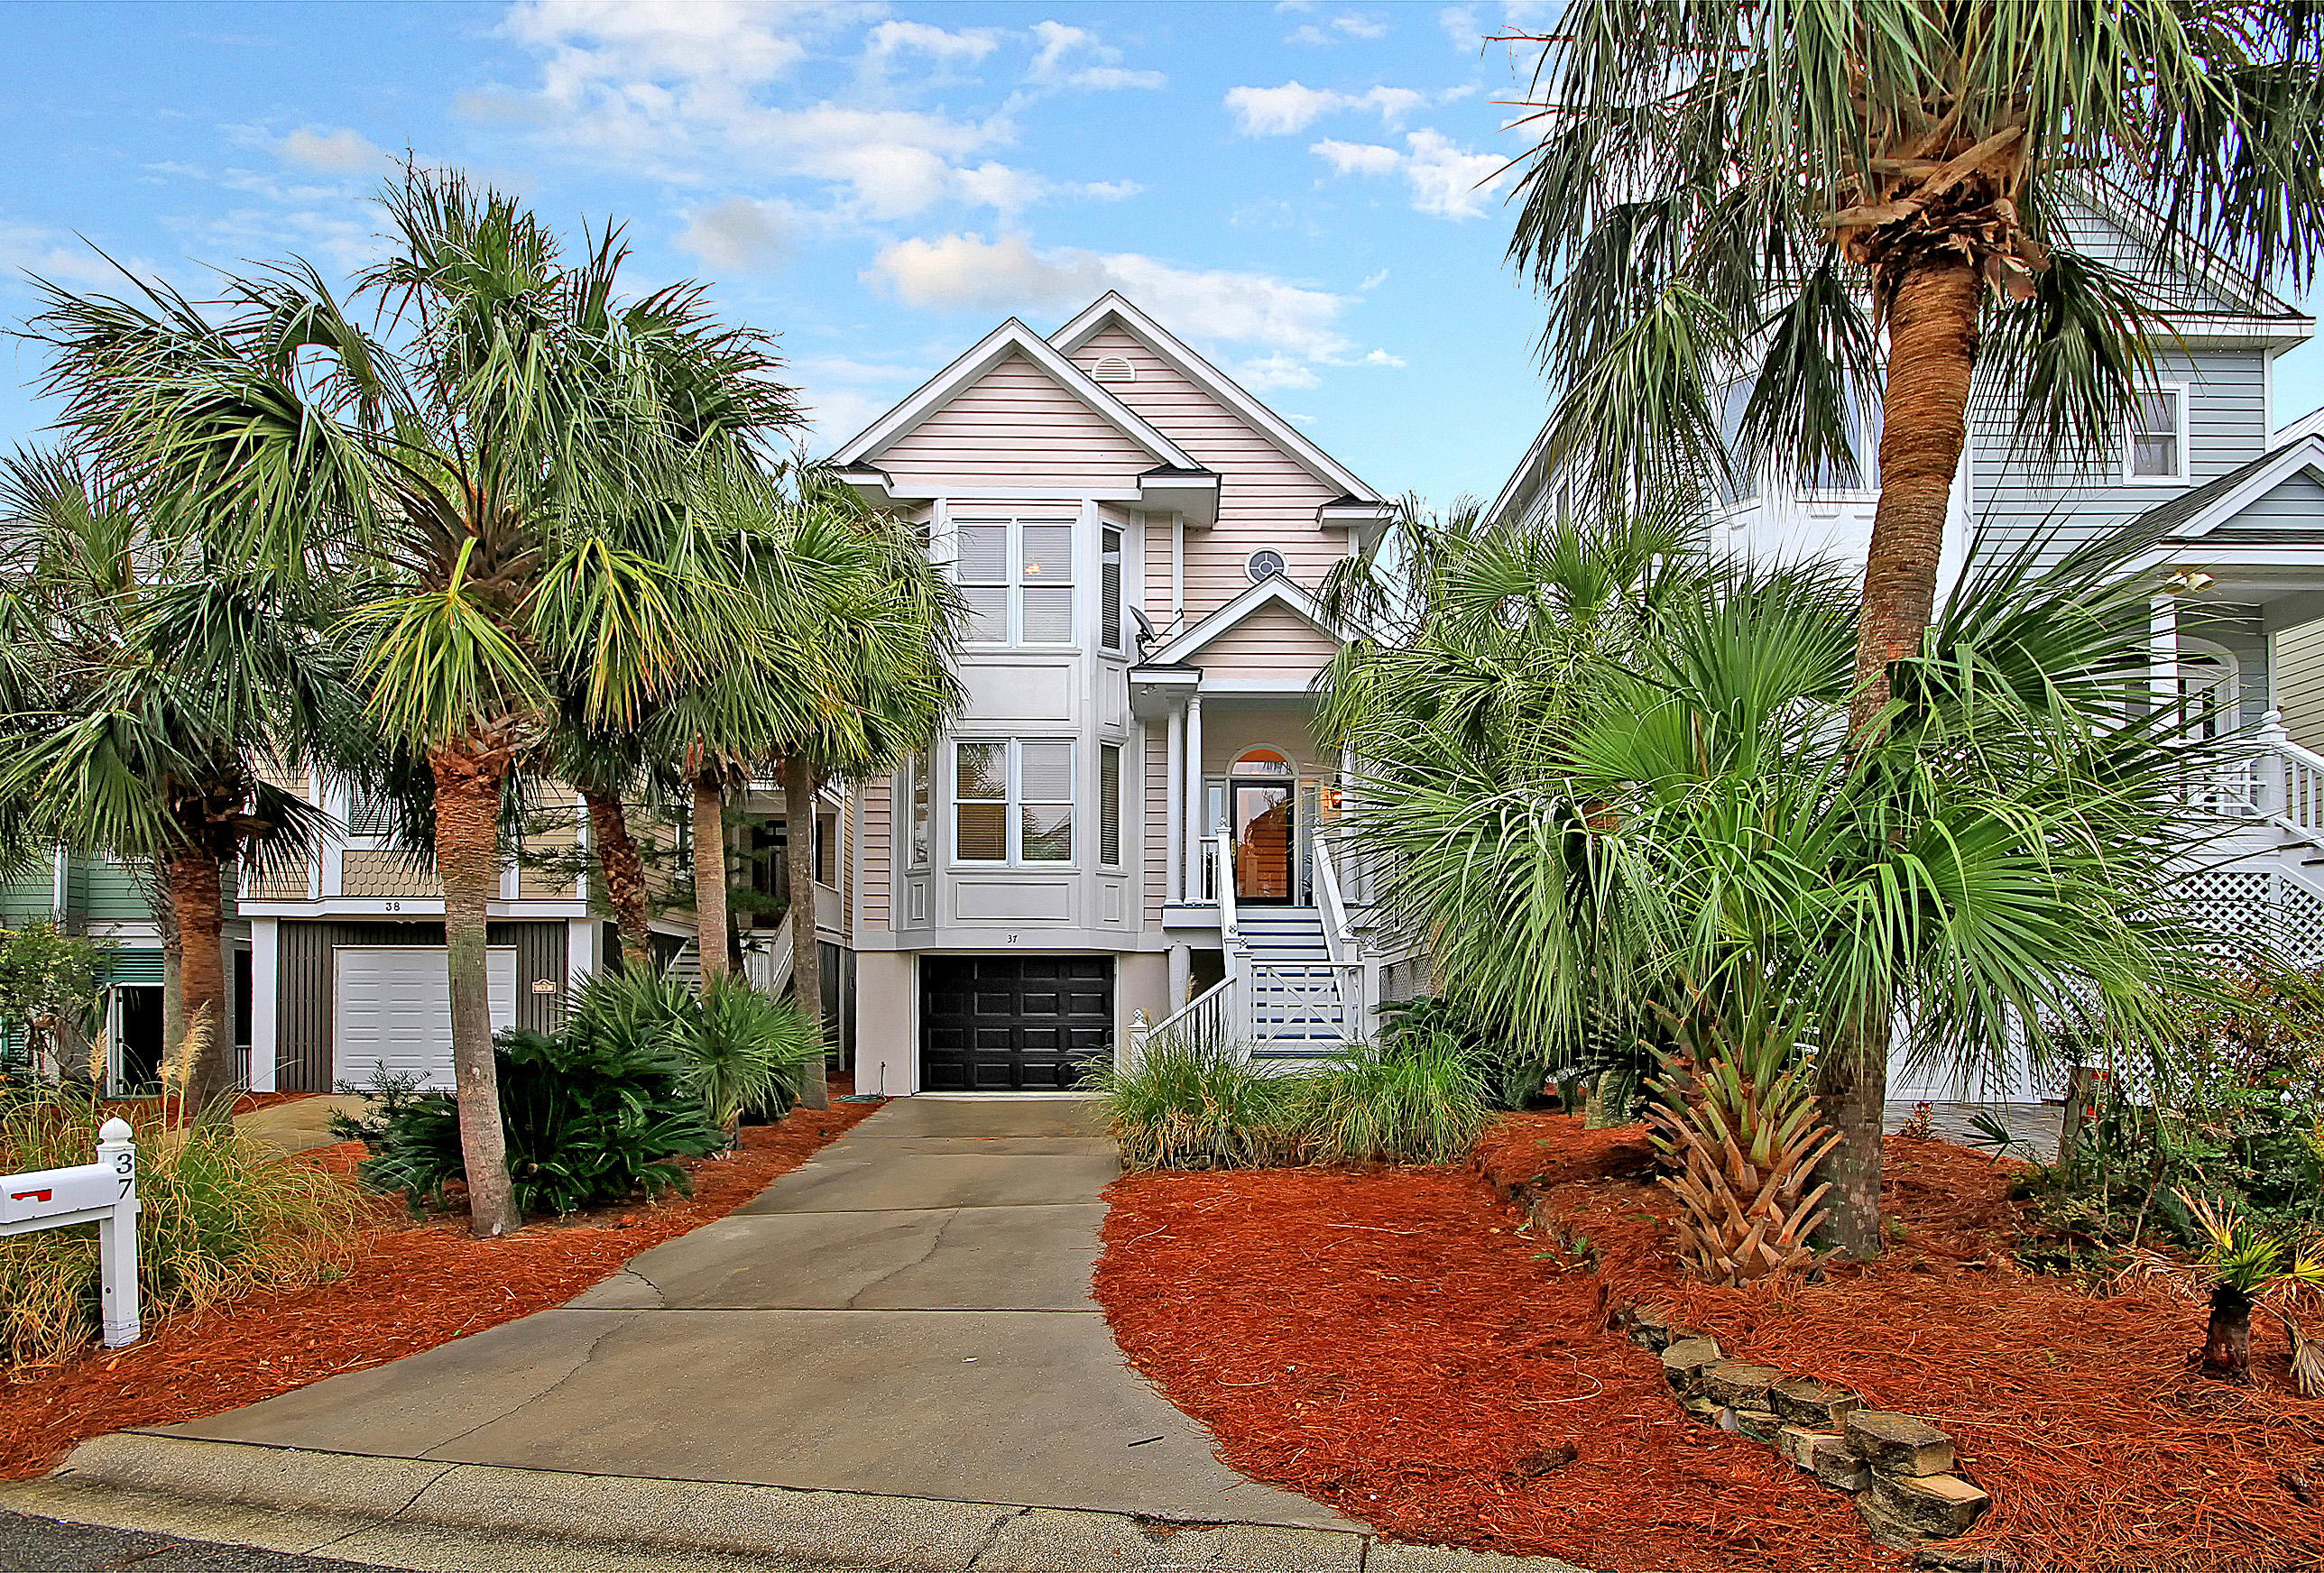 Wild Dunes Homes For Sale - 37 Ocean Point, Isle of Palms, SC - 48